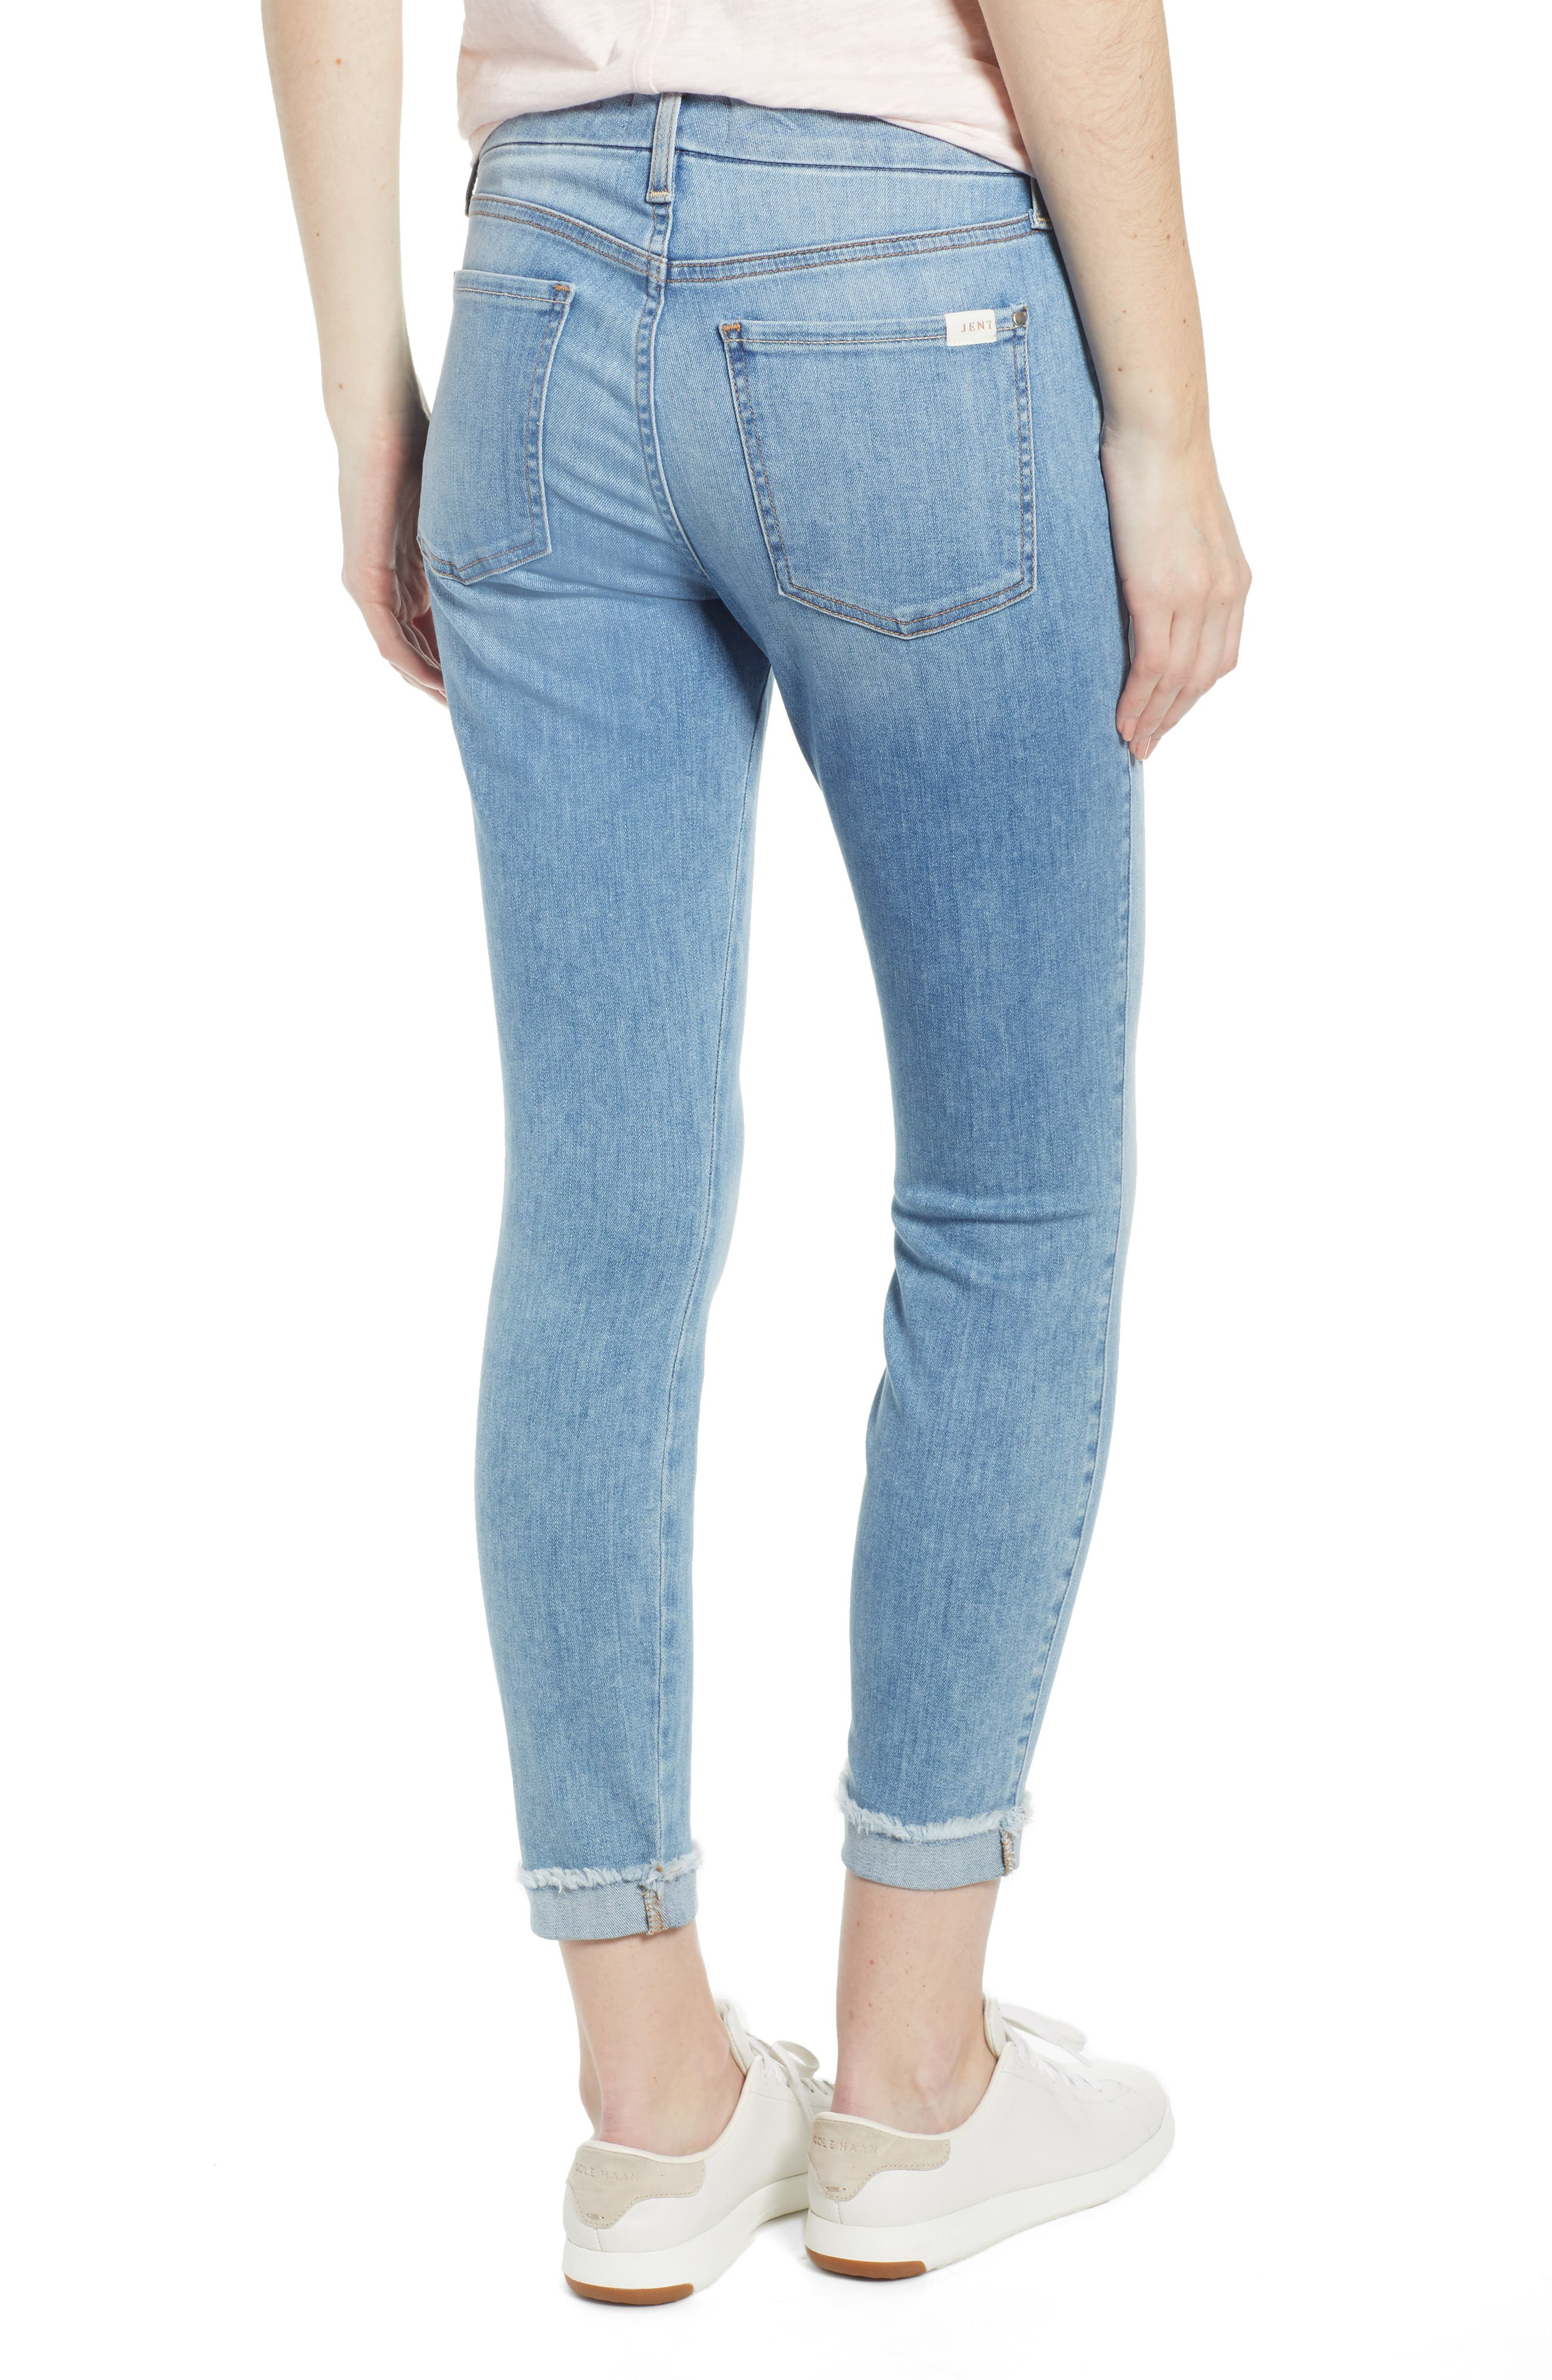 JEN7 BY 7 FOR ALL MANKIND, Cuffed Crop Skinny Jeans, Alternate thumbnail 2, color, LA QUINTA